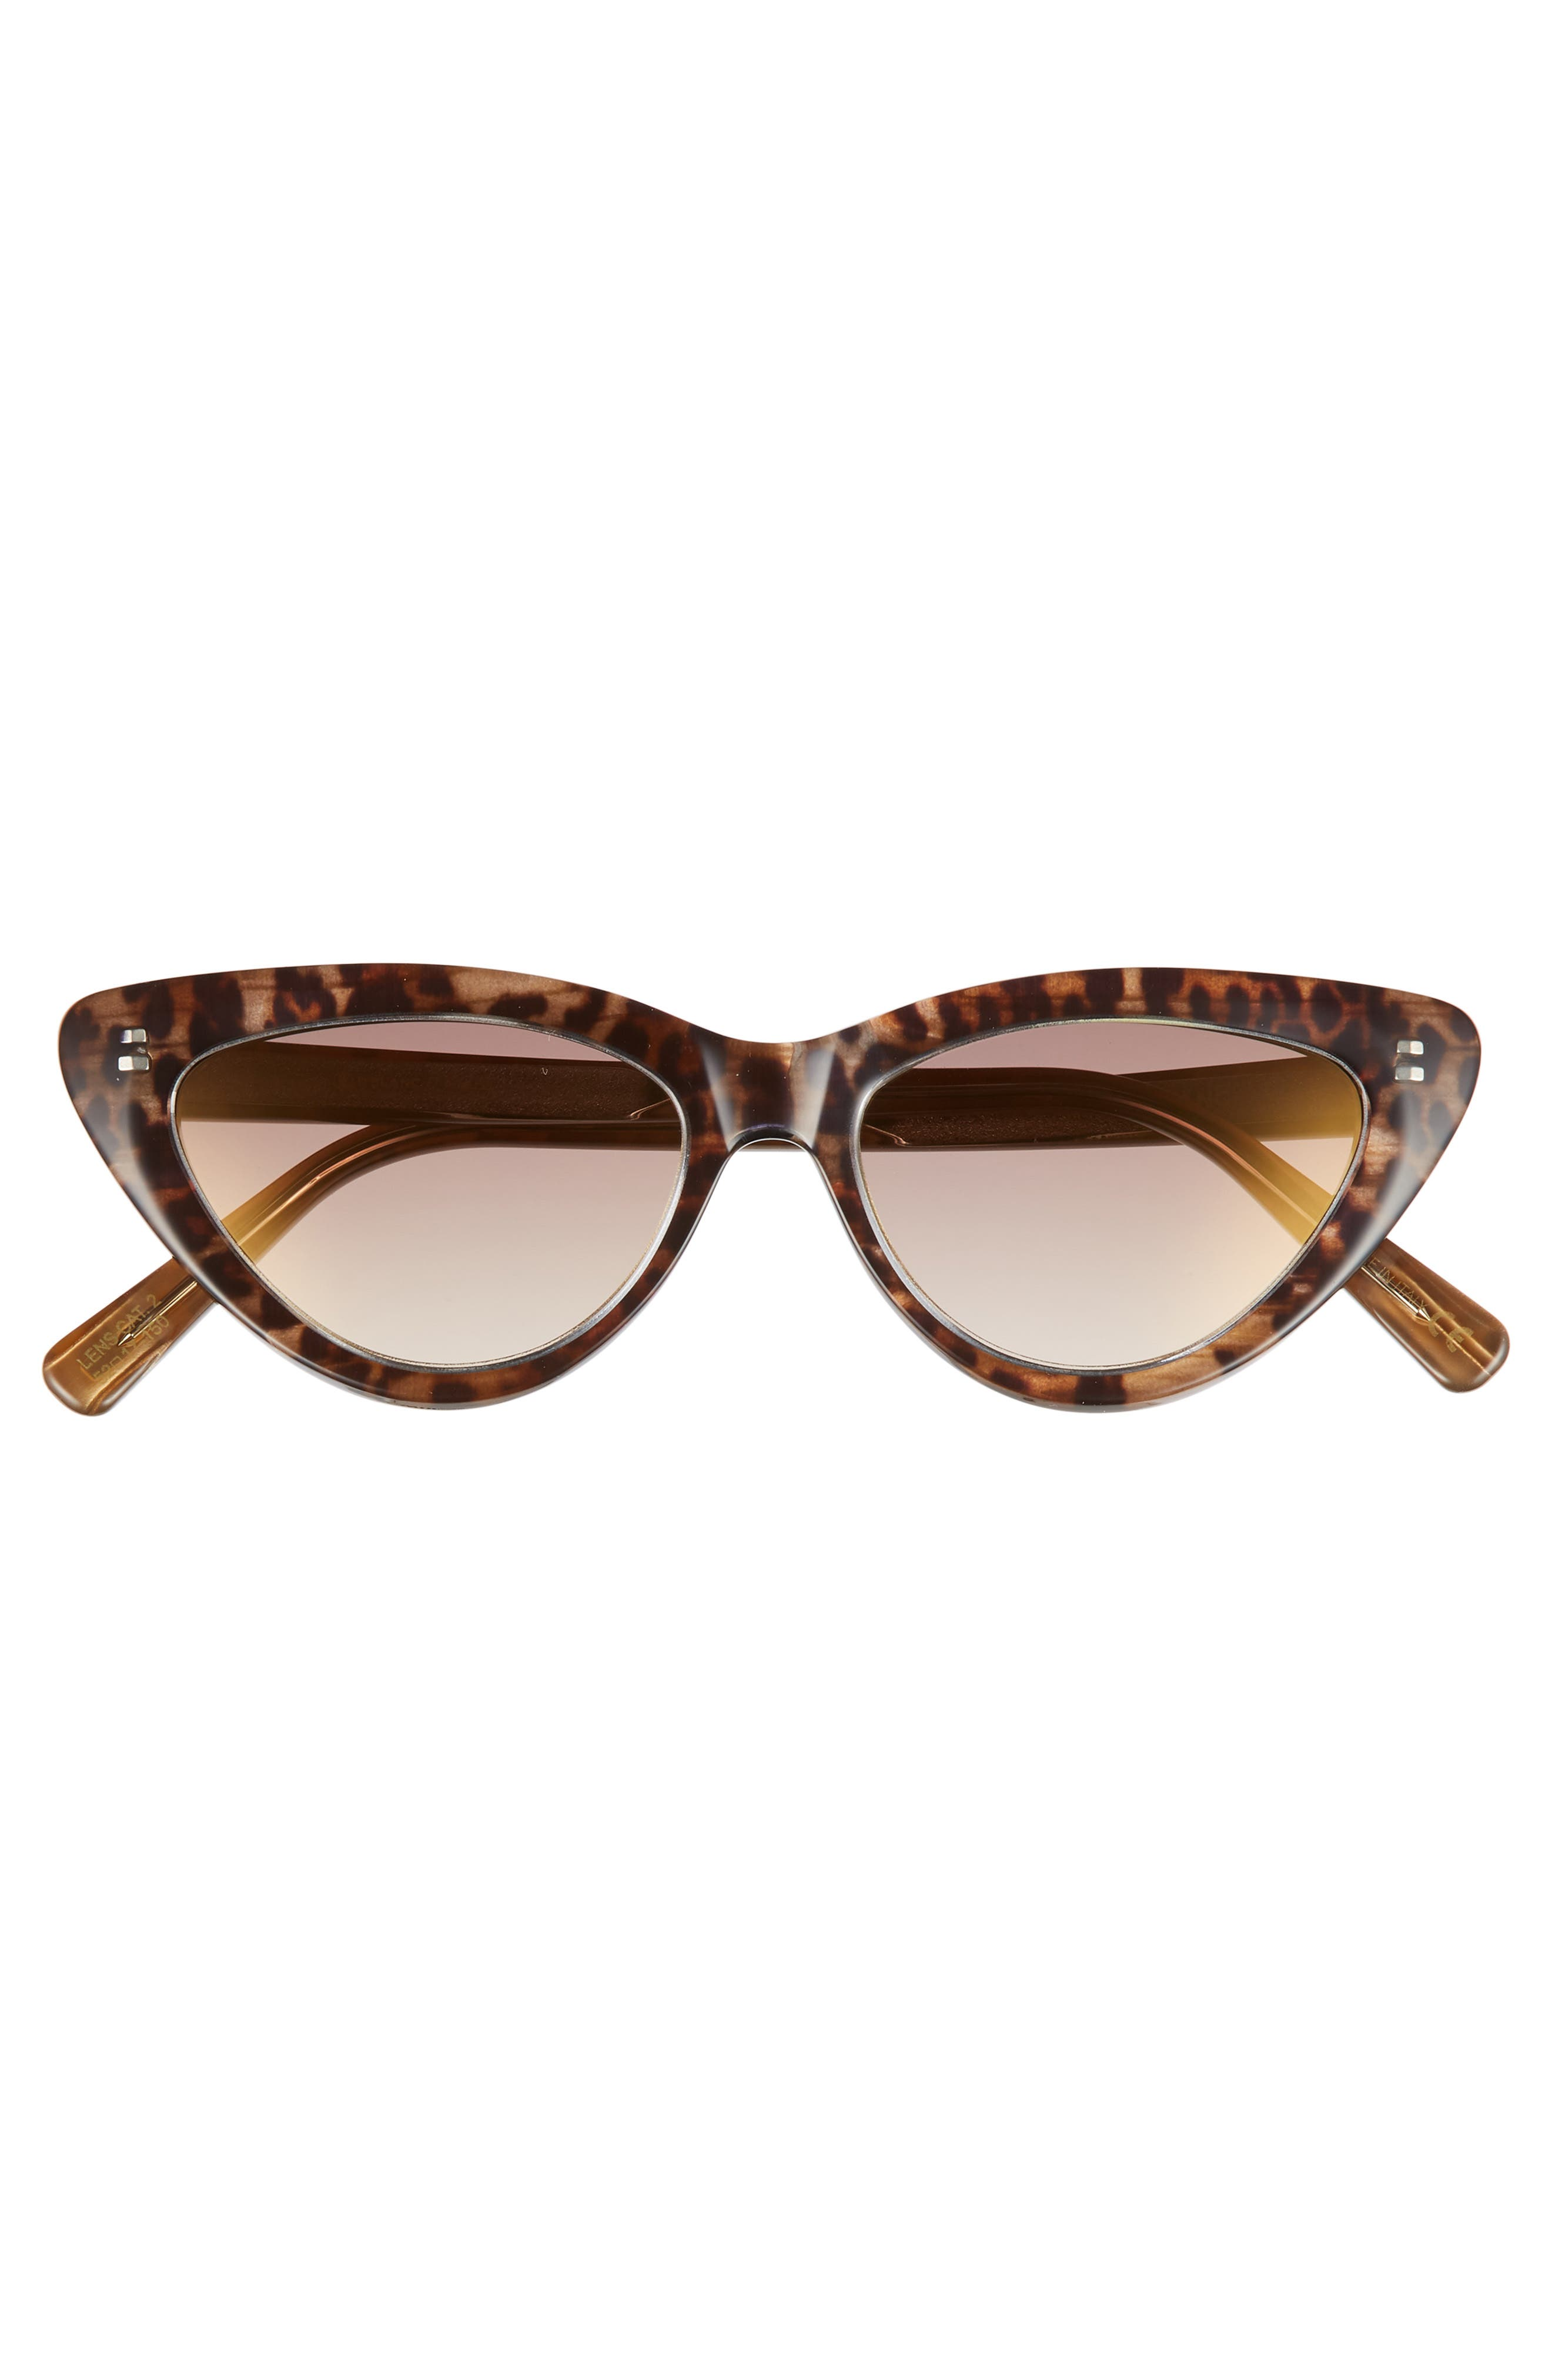 D'BLANC A-Muse 52mm Sunglasses,                             Alternate thumbnail 3, color,                             CHEETAH